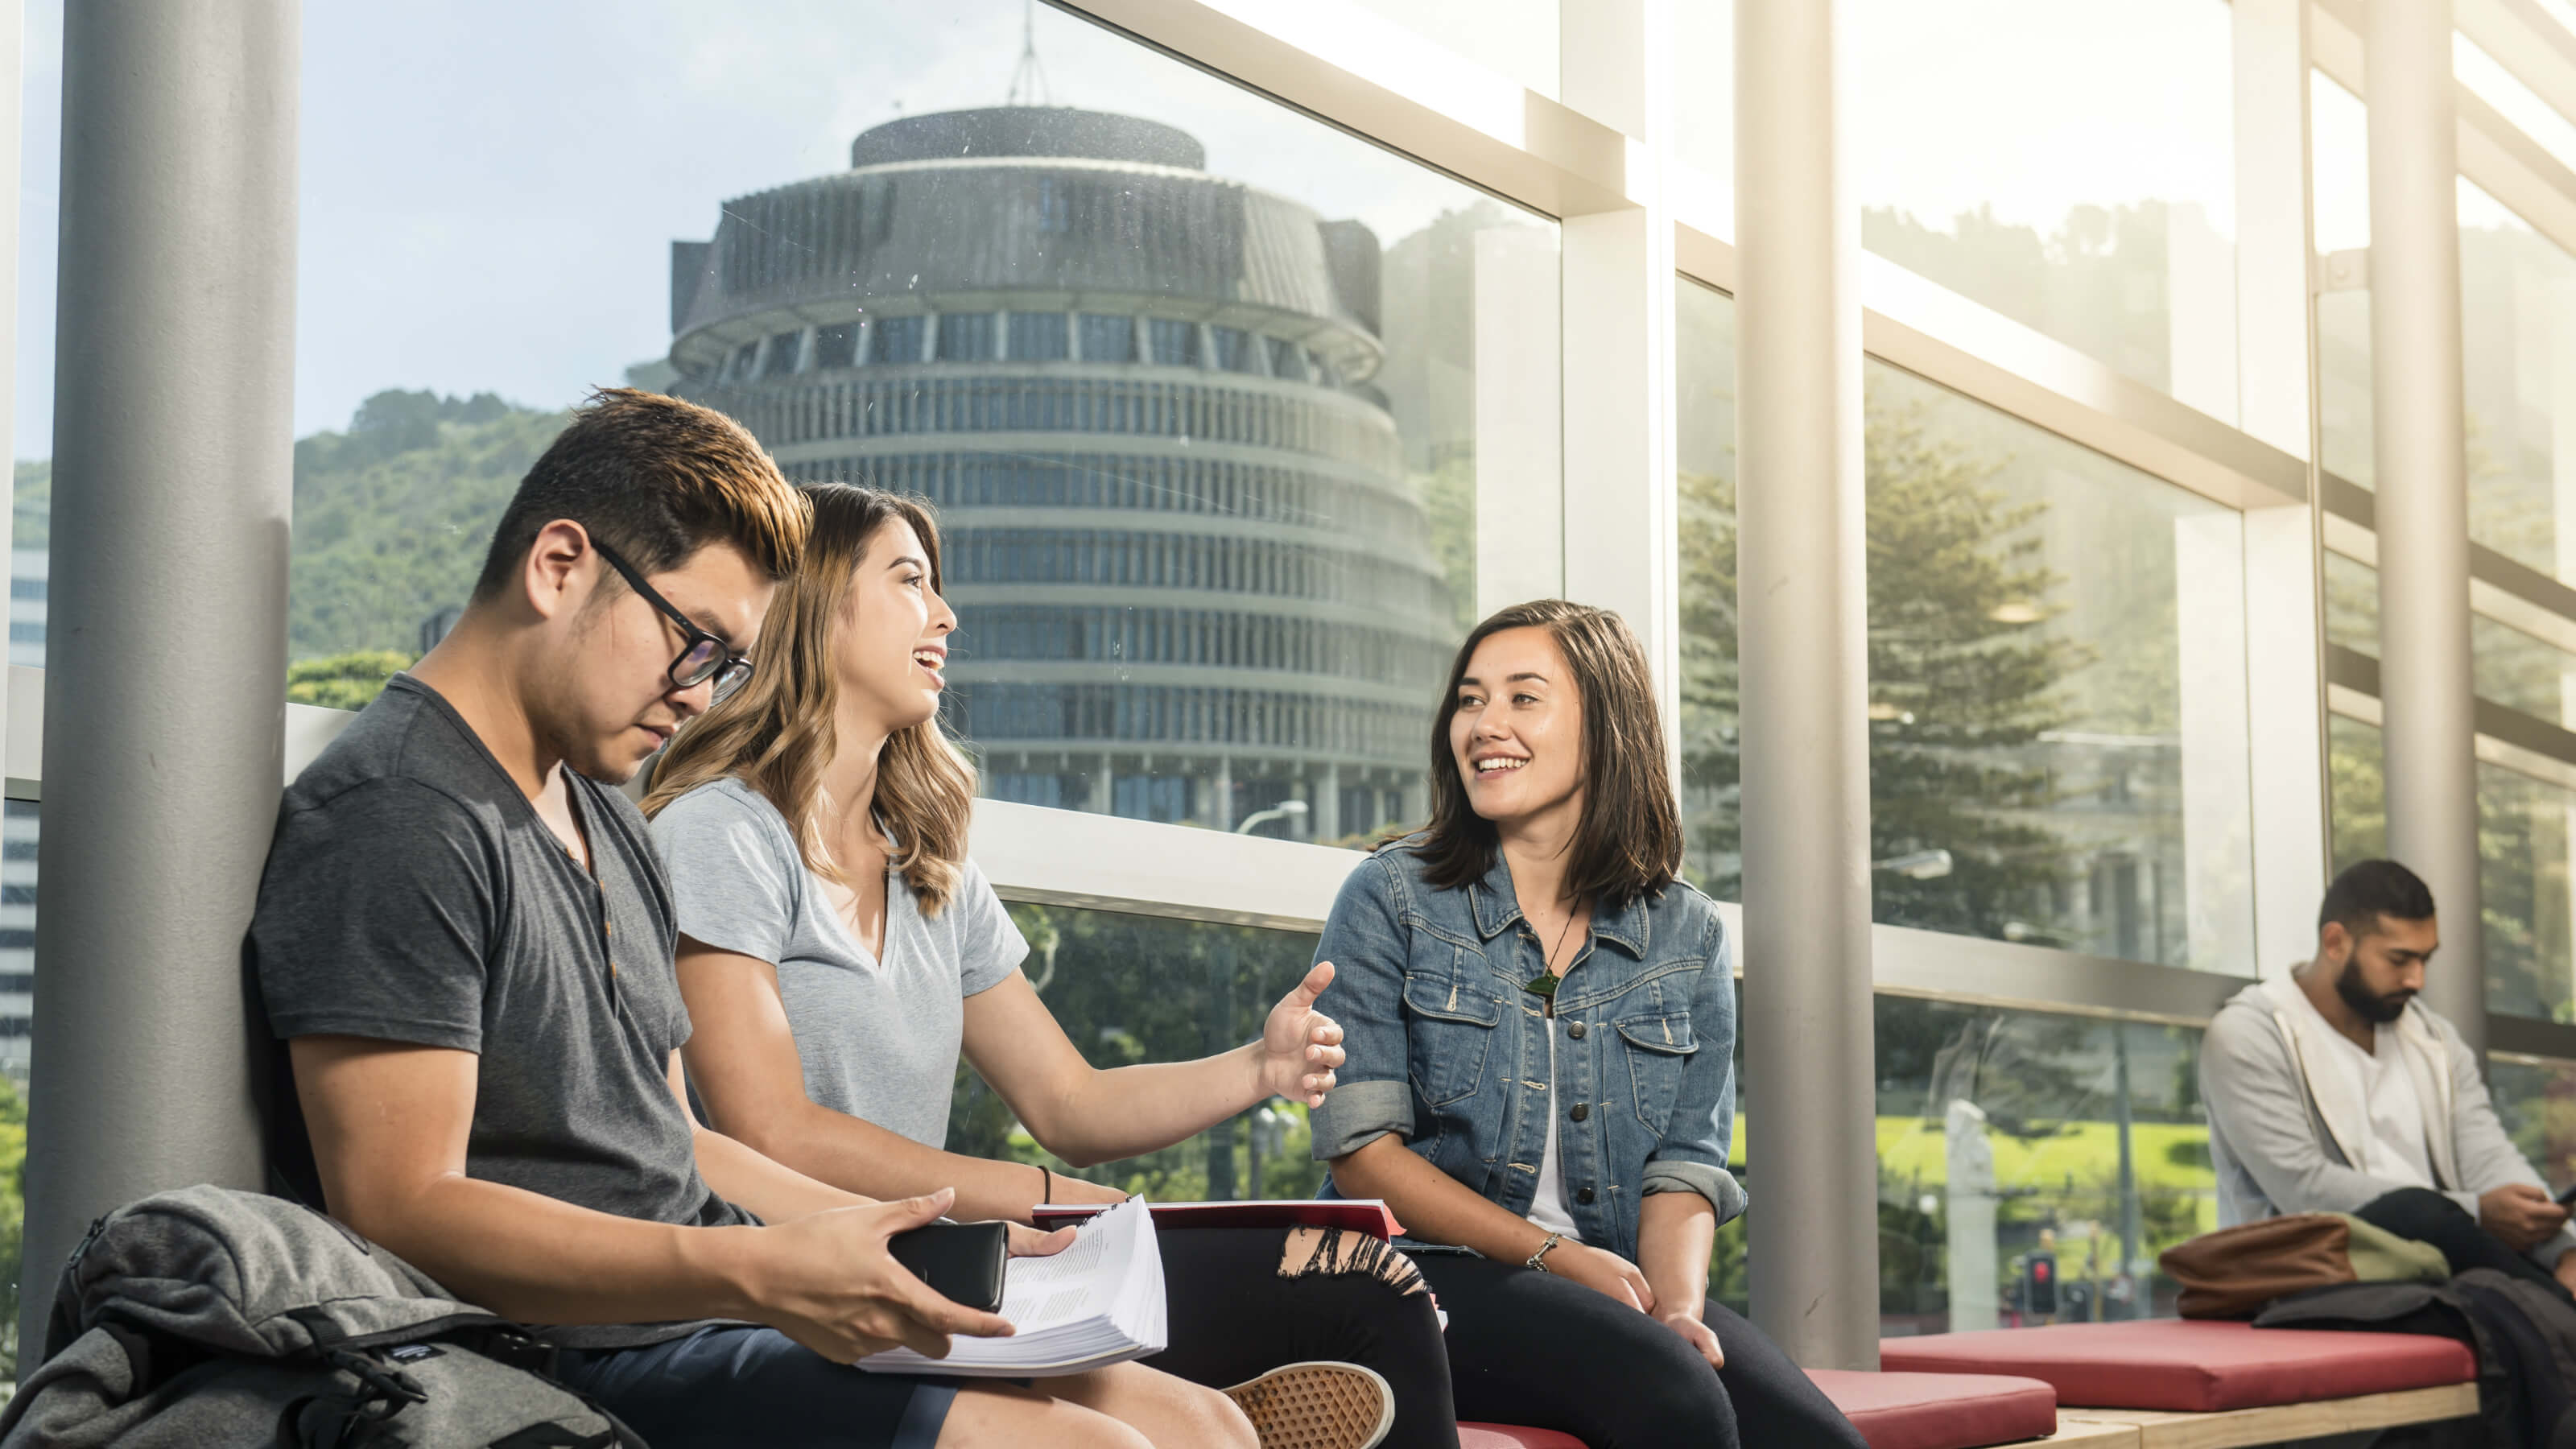 A group of students sitting and talking at Victoria University's Pipitea campus with the Beehive (Parliament buildings) in the background.